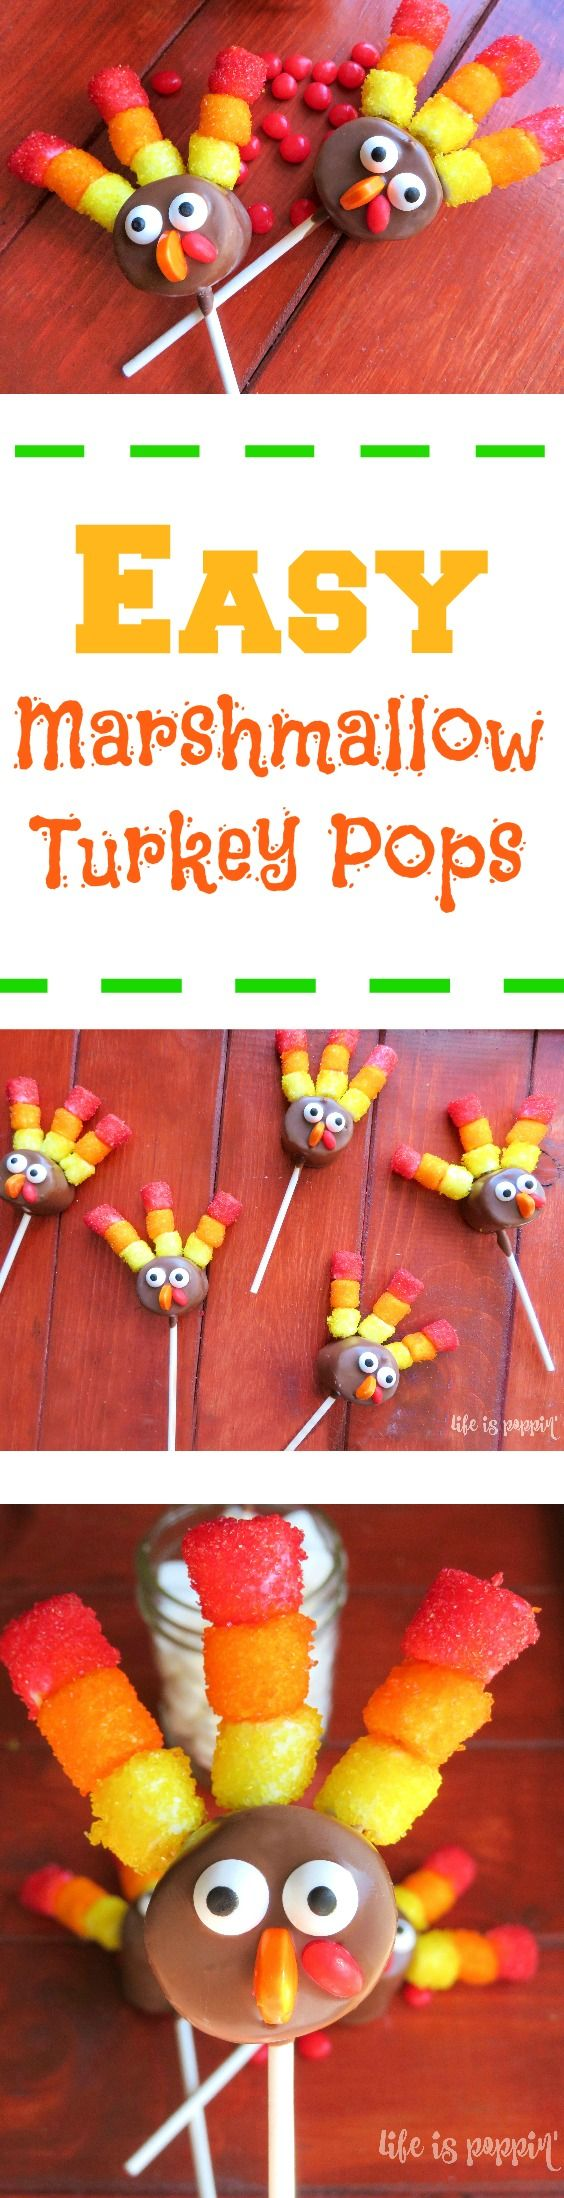 Holy cuteness! Take a look at these adorable marshmallow turkey pops! Make these for your kids or let them help you, and I promise, you will be the coolest parent around! They look super fancy but they are actually pretty simple. You could make these turkey pops for the kids' class parties or at your Thanksgiving feast. Whatever you decided to make them for, you will wow a crowd!